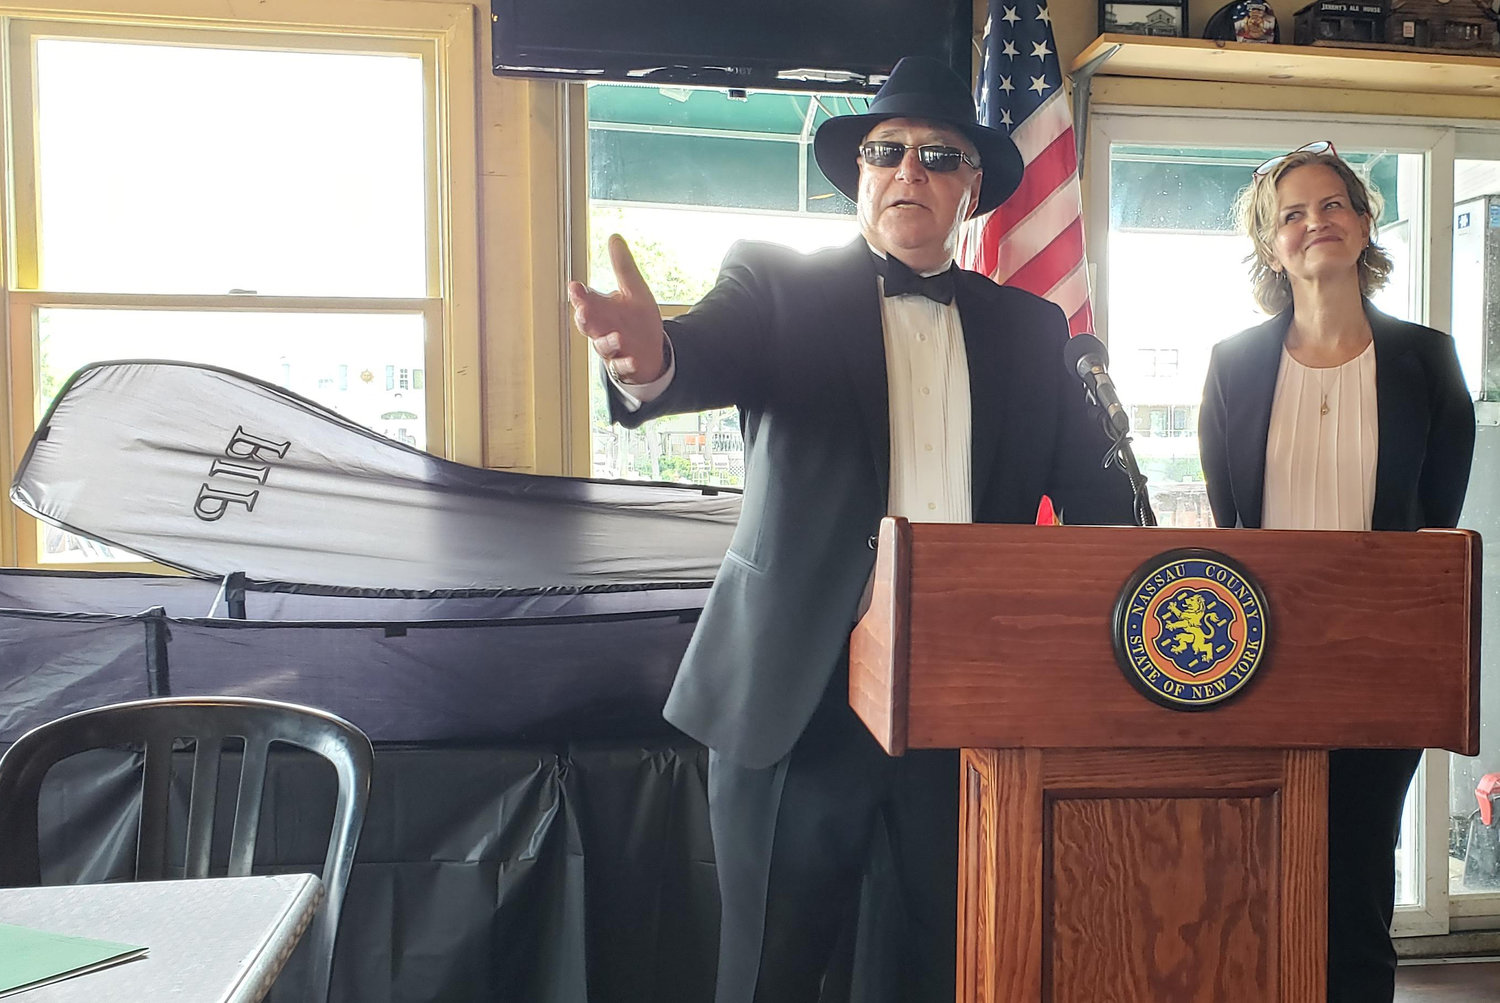 Jeremy Holin, owner of Jeremy's Ale House shared a lighthearted eulogy and a formal farewell of plastic foam.